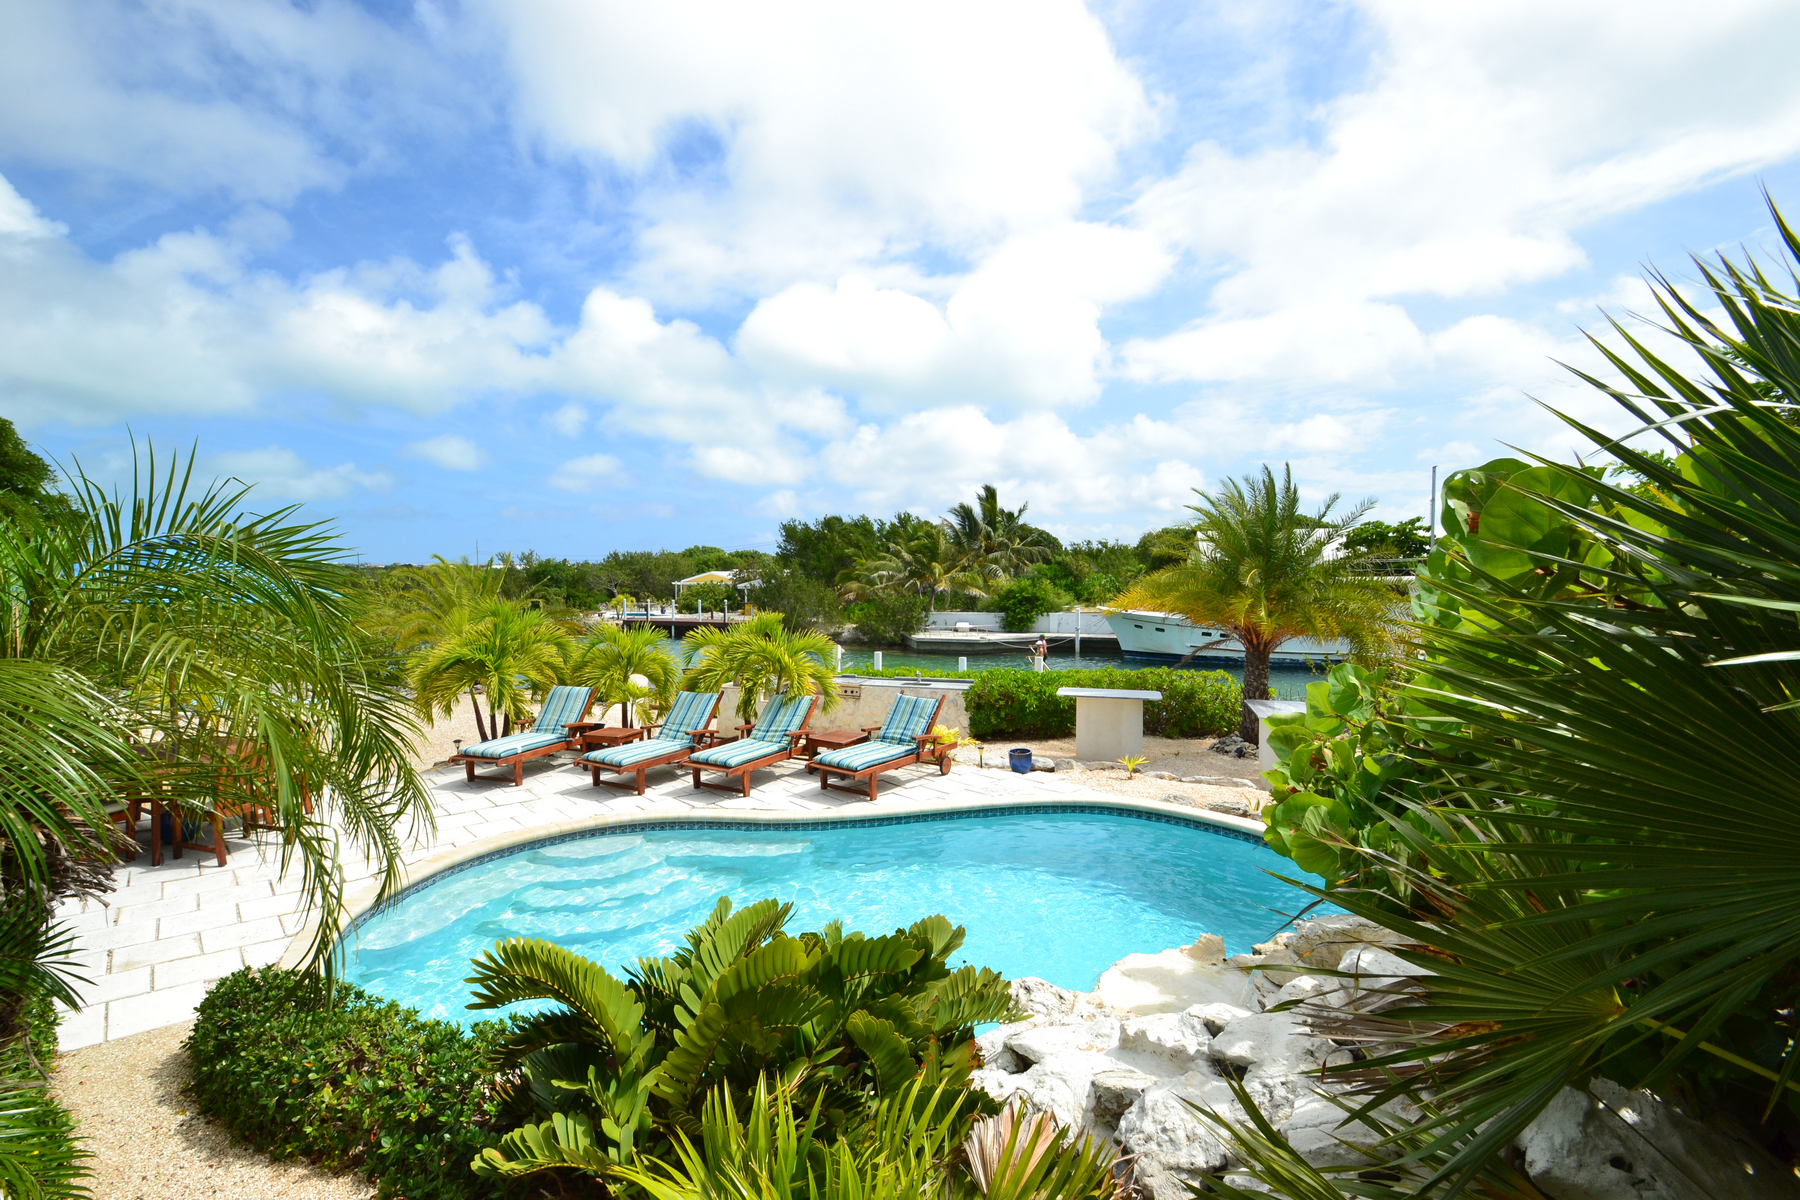 Single Family Home for Sale at Discovery Bay Canalfront Canalfront Discovery Bay, Providenciales TC Turks And Caicos Islands